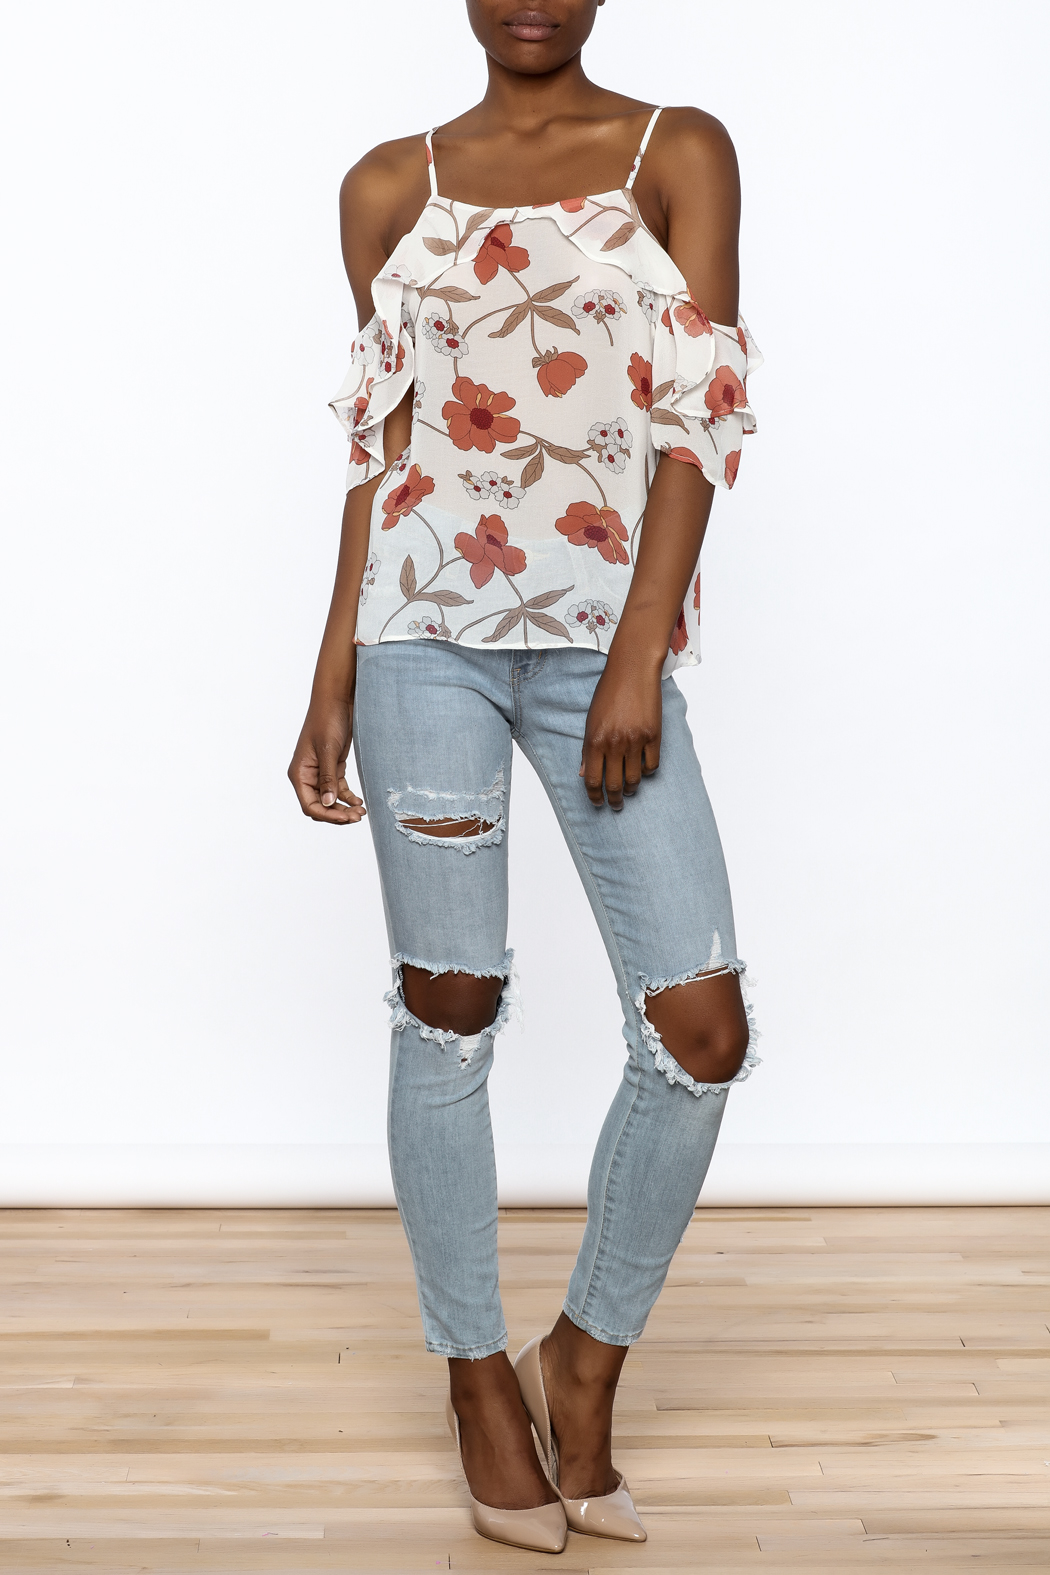 MICHEL Ruffle Floral Top - Front Full Image